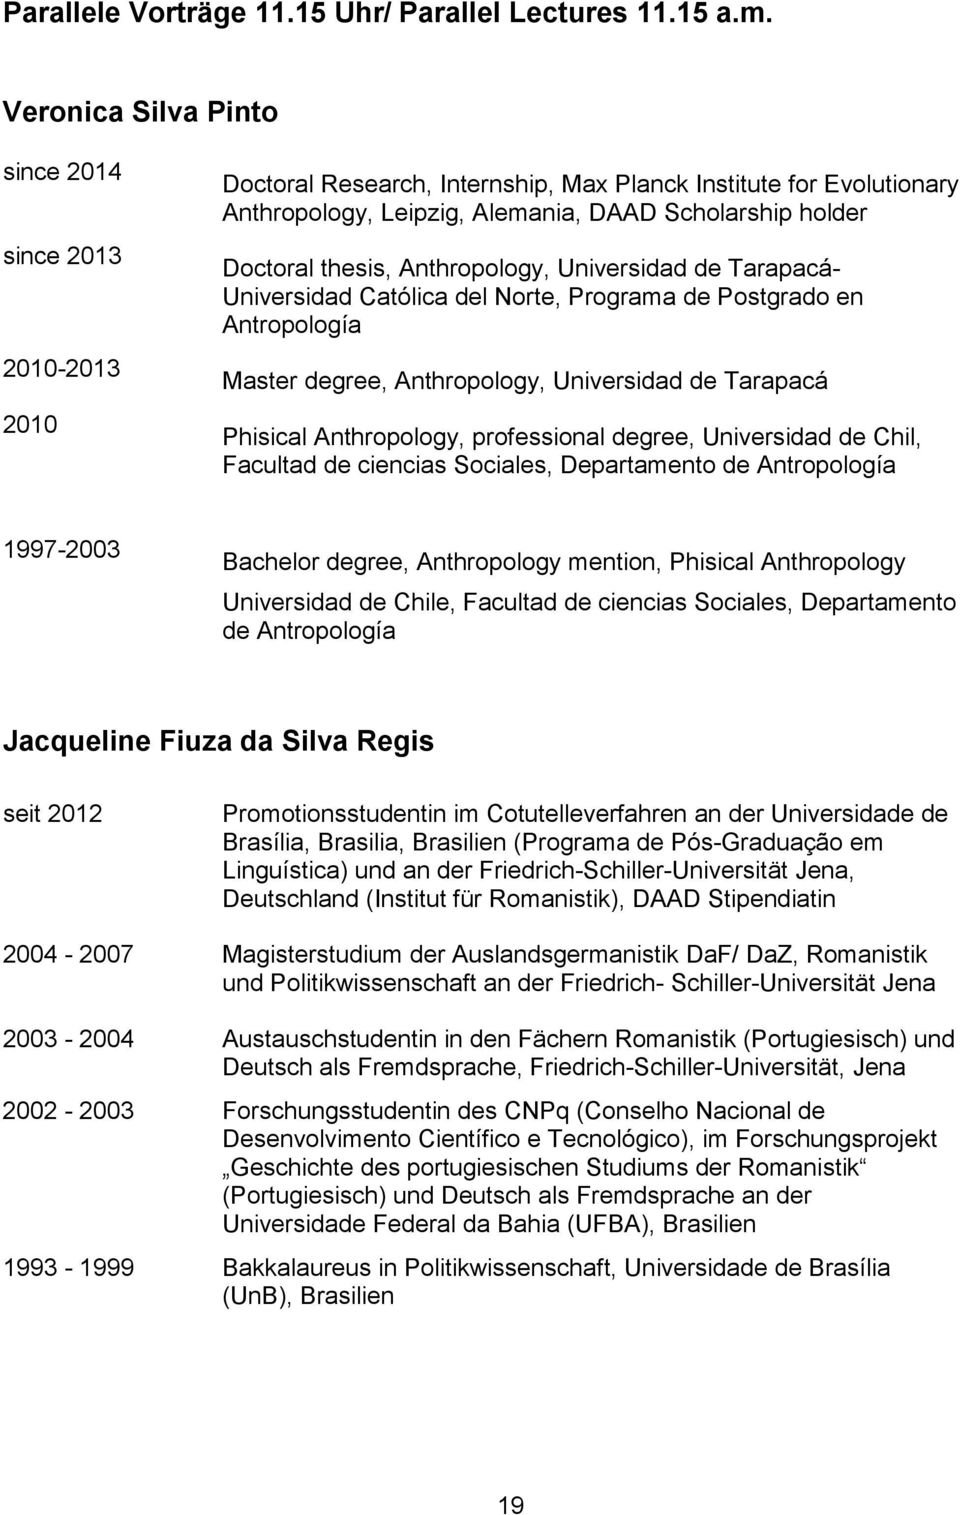 thesis, Anthropology, Universidad de Tarapacá- Universidad Católica del Norte, Programa de Postgrado en Antropología Master degree, Anthropology, Universidad de Tarapacá Phisical Anthropology,